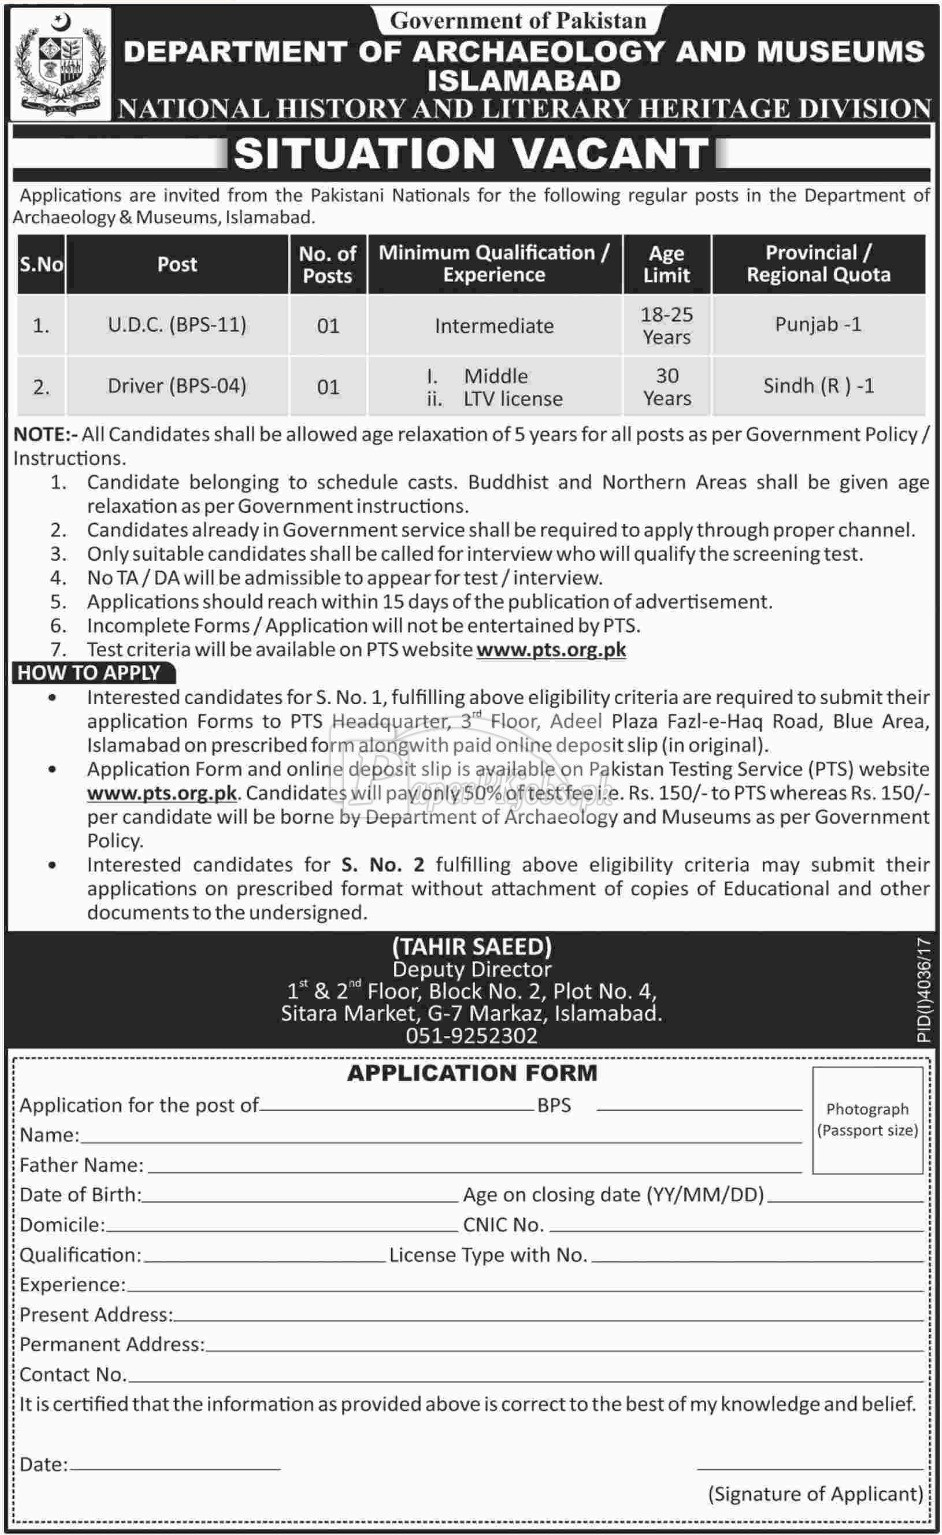 Department of Archaeology & Museums Islamabad PTS Jobs 2018